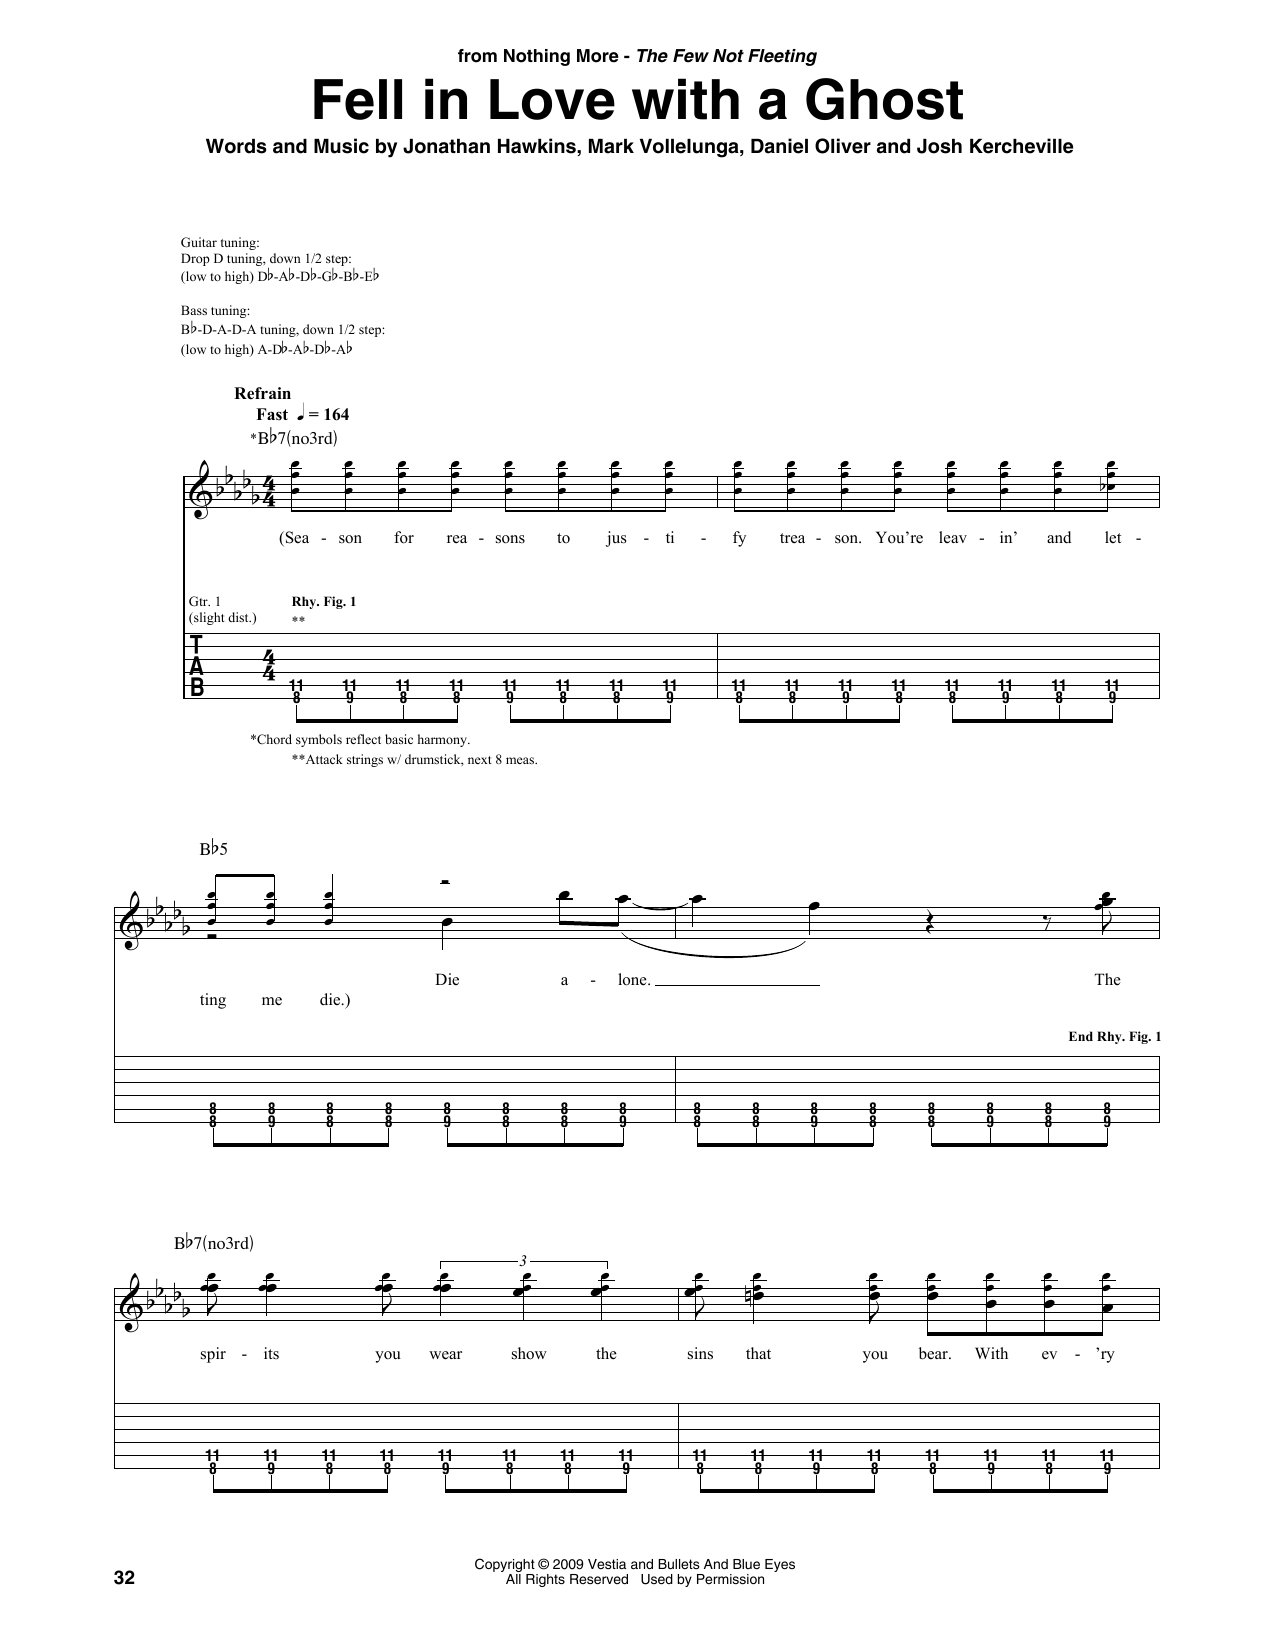 Download Nothing More 'Fell In Love With A Ghost' Digital Sheet Music Notes & Chords and start playing in minutes